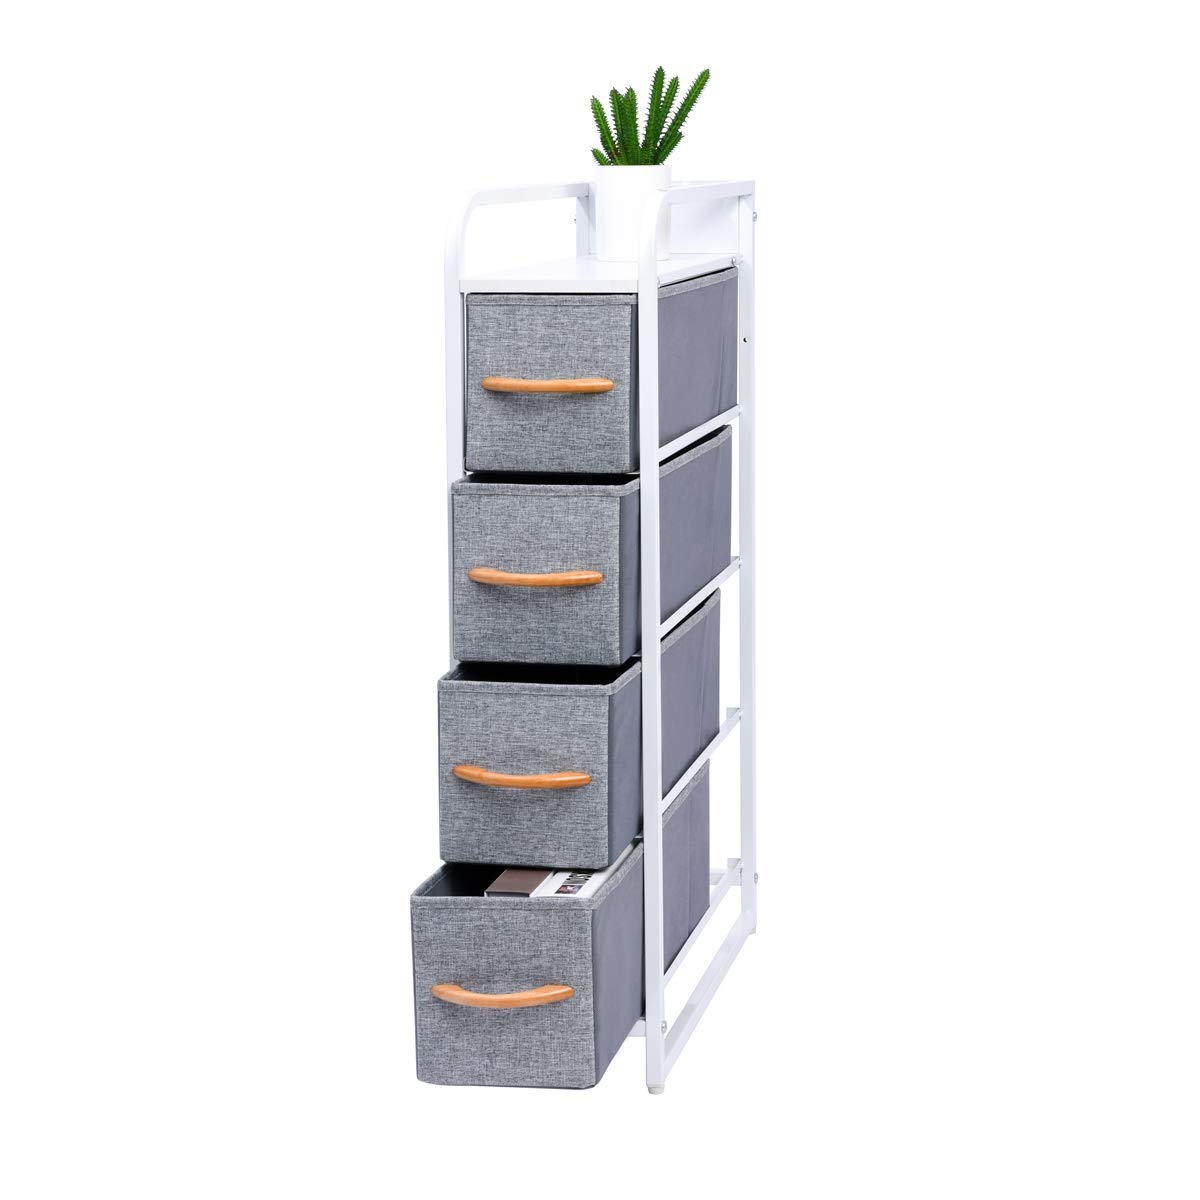 4 TIER Dresser Tower Clothes Organizer Metal Frame Features Wooden Tabletop US